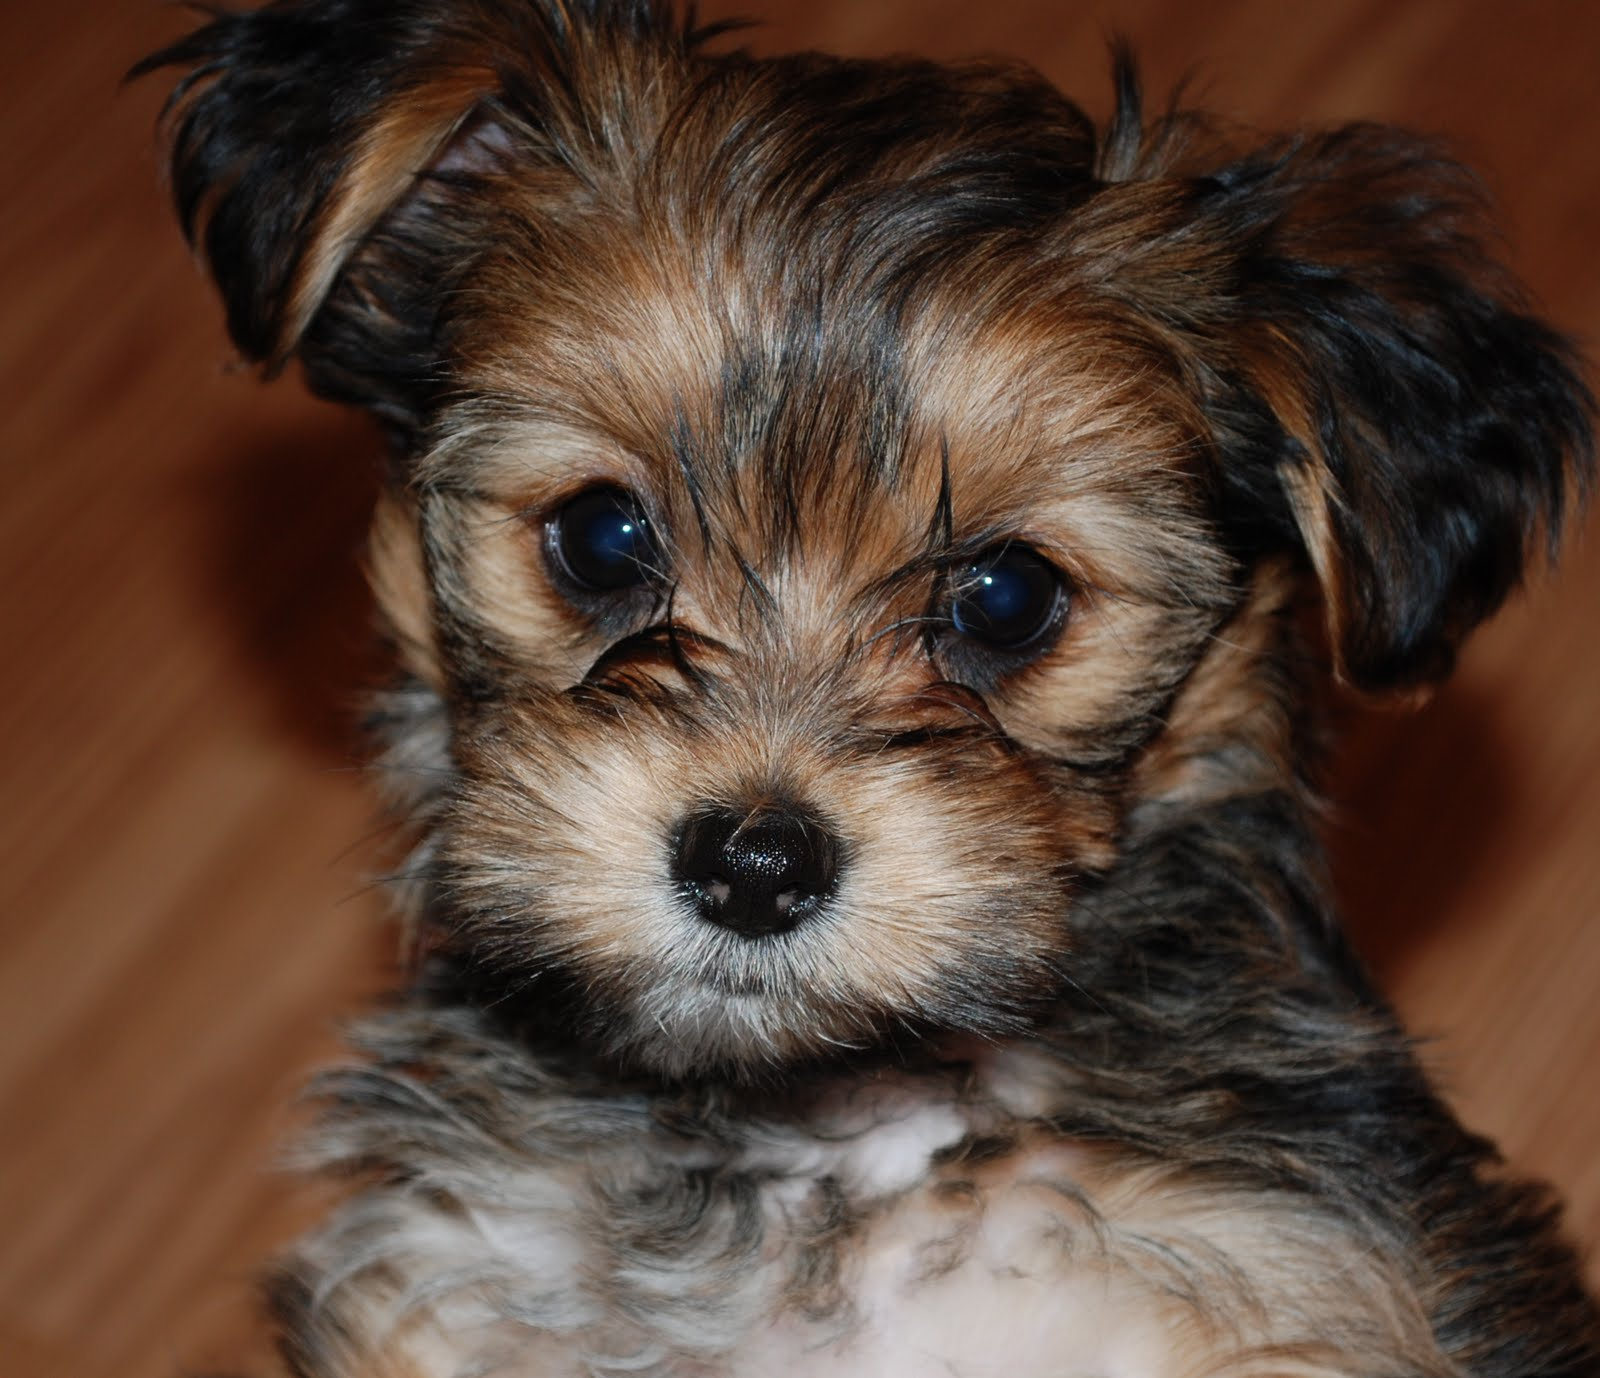 Pictures of Shorkie Haircuts http://shorkiepuppies.blogspot.com/2009/11/reagan-8-wk-shorkie-puppy.html